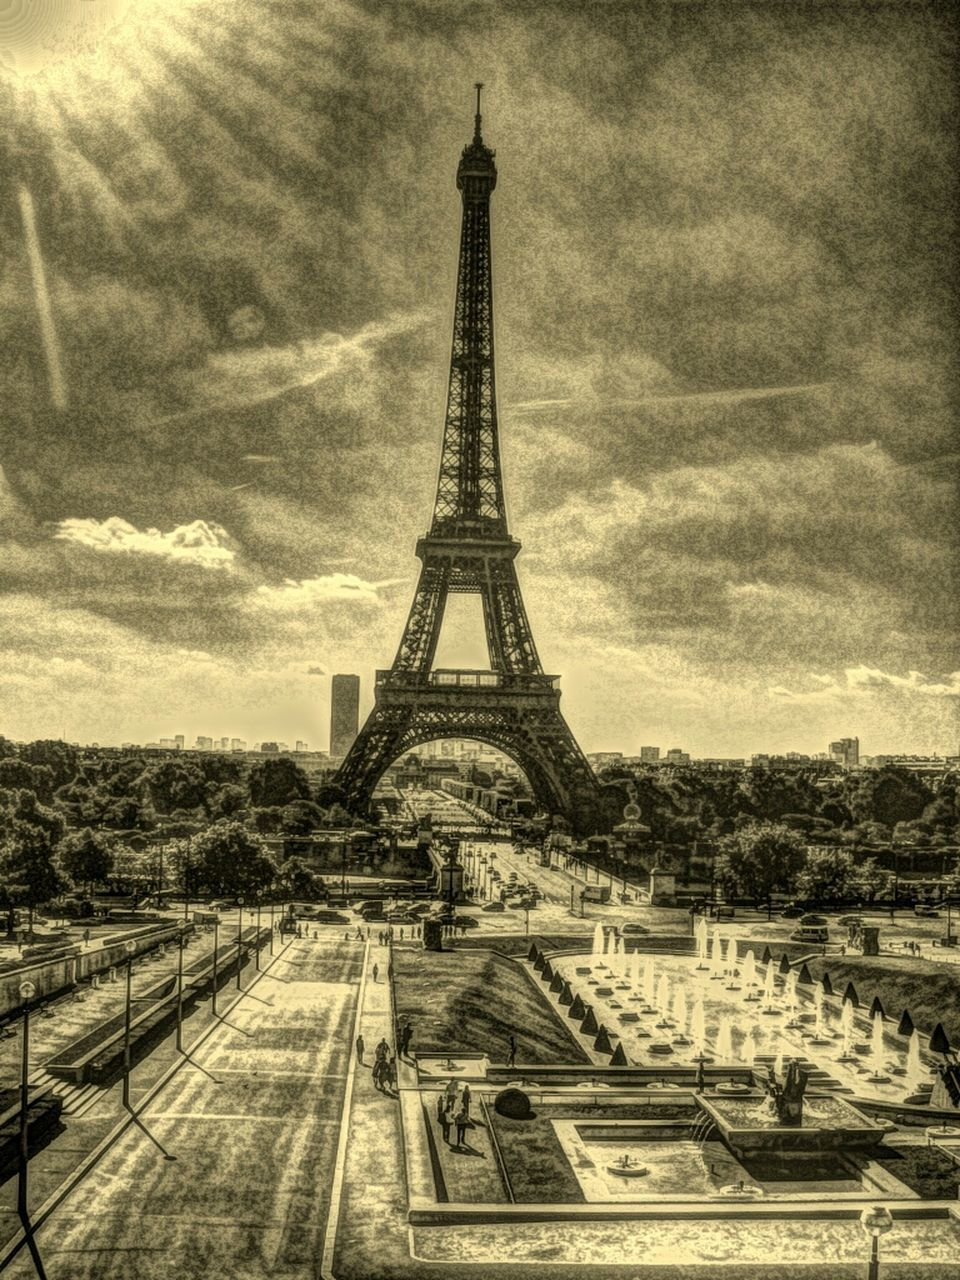 travel destinations, tourism, famous place, international landmark, eiffel tower, tower, architecture, travel, built structure, culture, capital cities, tall - high, sky, city, building exterior, history, architectural feature, metal, iron - metal, cloud, monument, cloud - sky, outdoors, city life, day, skyscraper, tall, paris, vacations, storm cloud, france, 19th century style, spire, engineering, wide shot